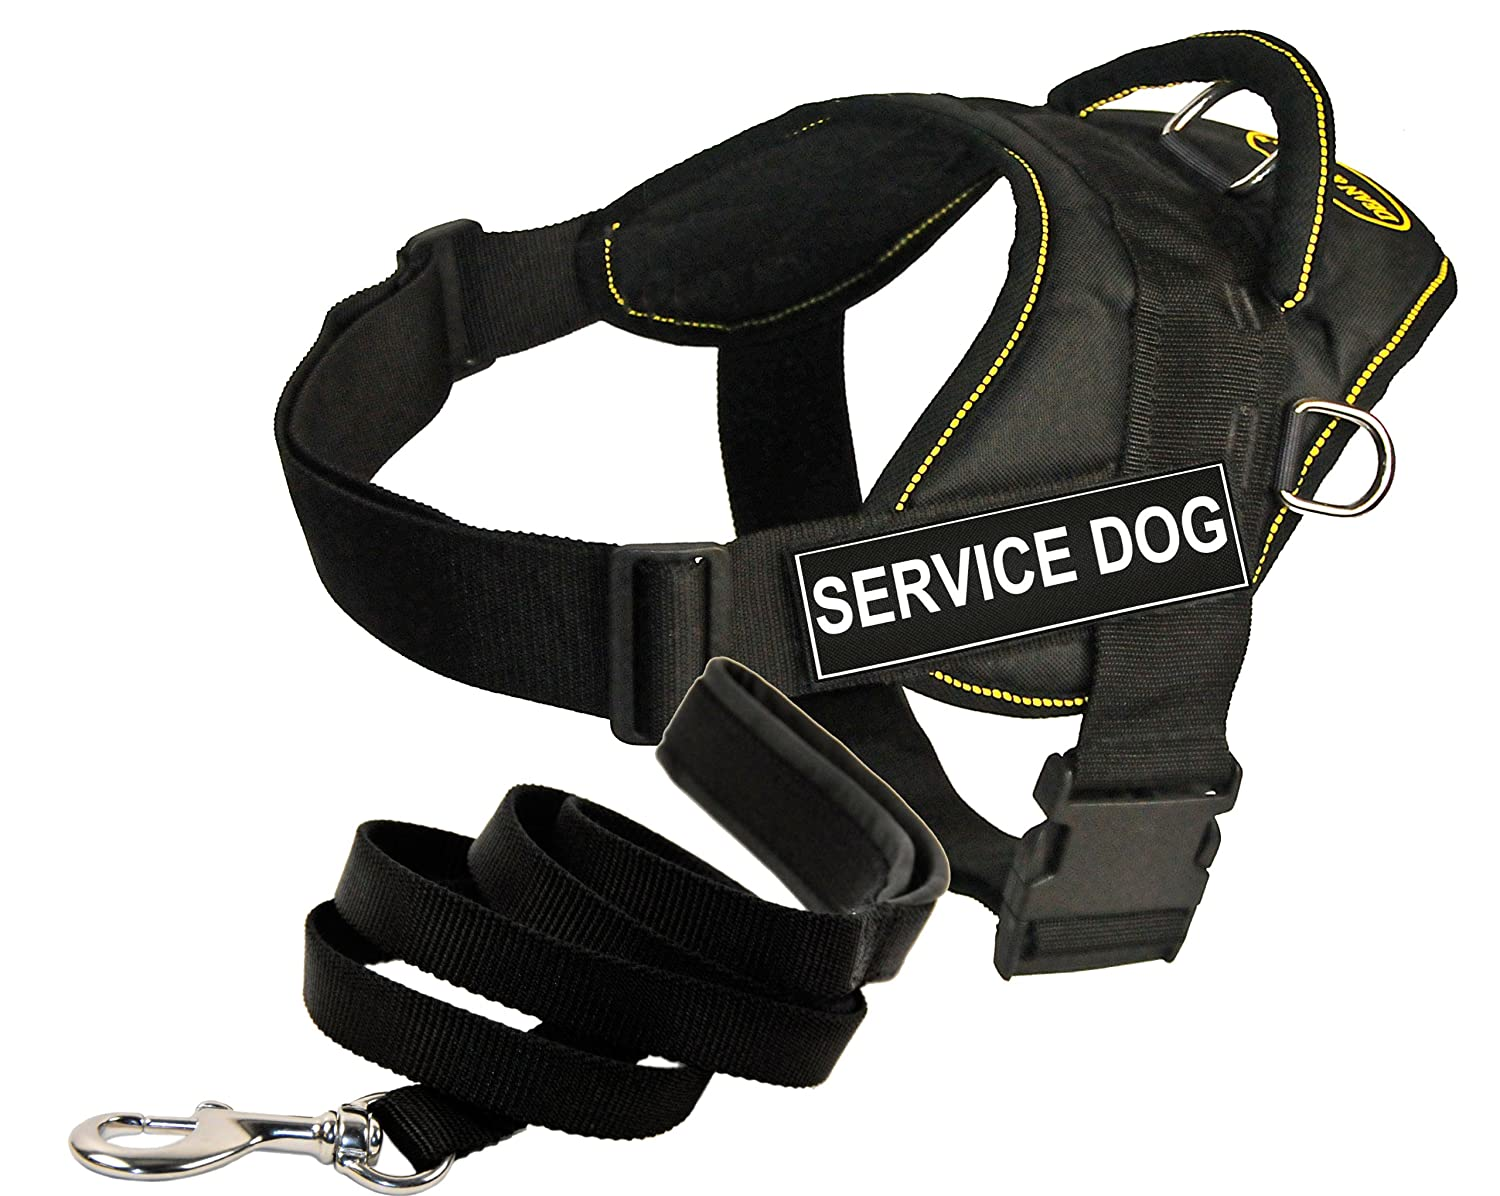 Dean and Tyler Bundle One DT Fun Works Harness, Service Dog, Yellow Trim, Small (22  27 ) + One Padded Puppy Leash, 6 FT Stainless Snap Black